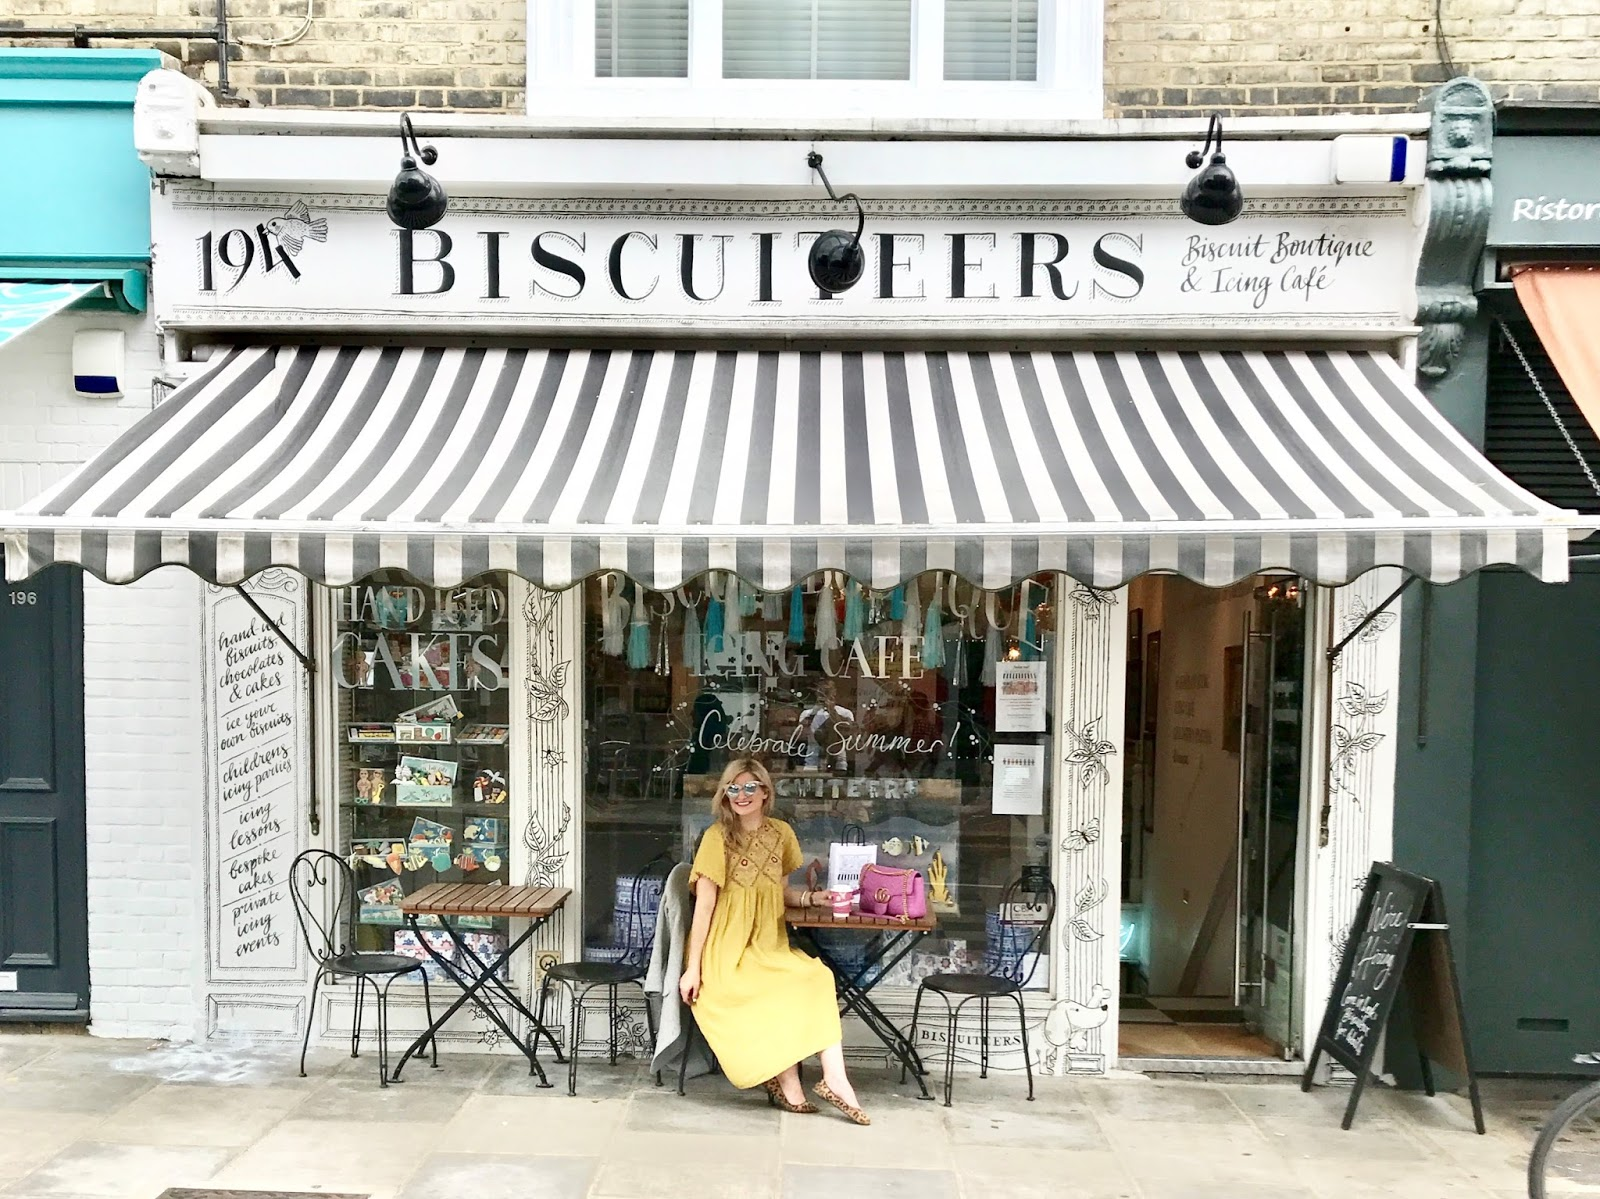 7 Instagram Perfect Brunch and Coffee Spots in London - Biscuttiers